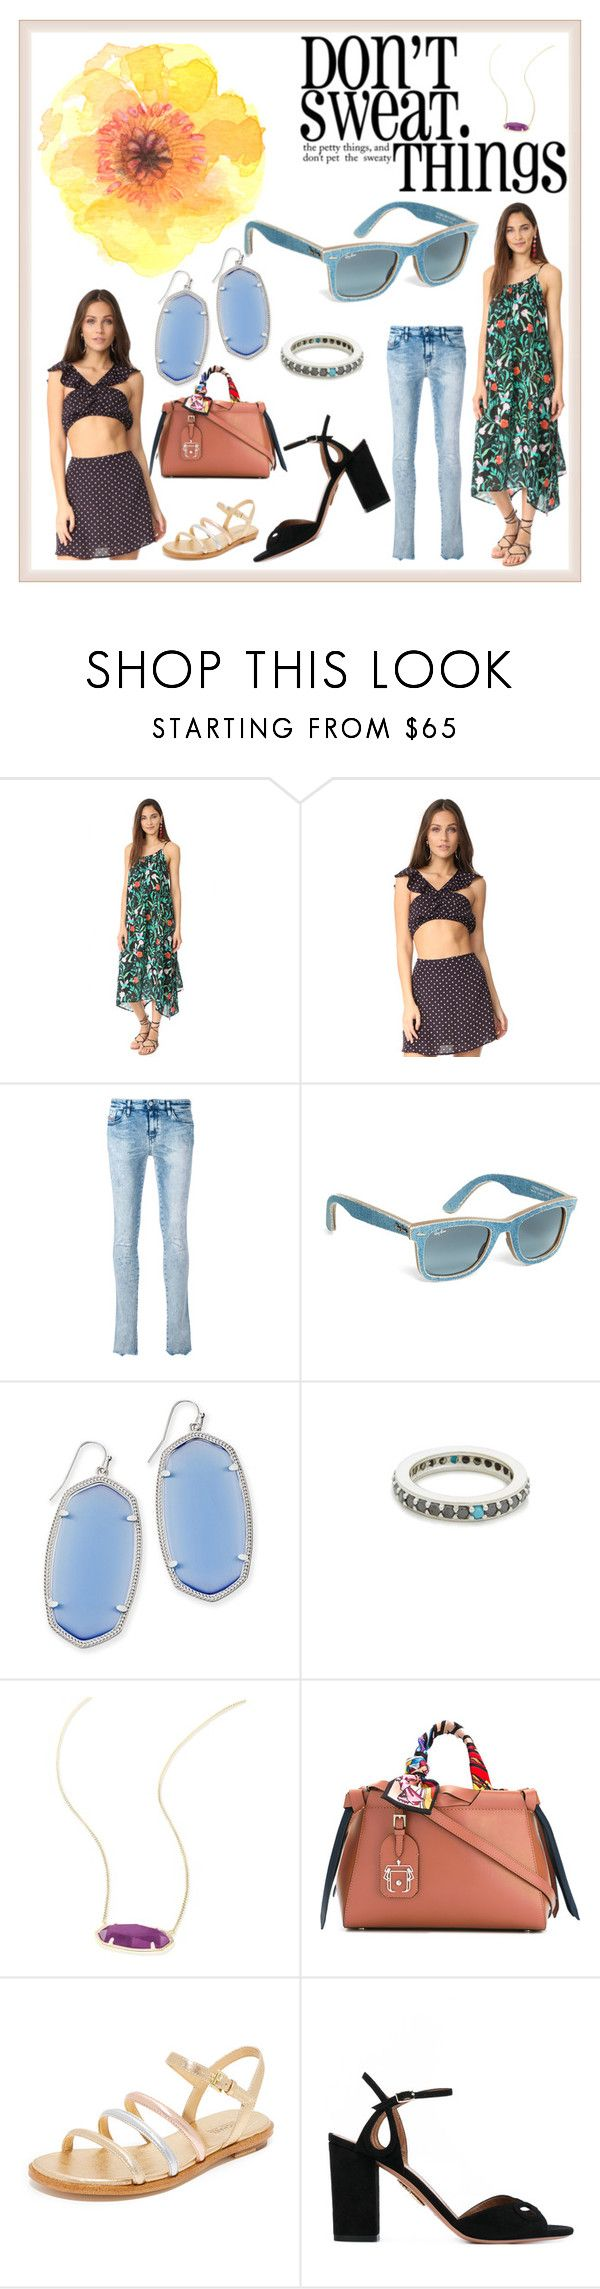 """Don't Sweet things"" by denisee-denisee ❤ liked on Polyvore featuring Kate Spade, For Love & Lemons, Diesel, Brooks Brothers, Kendra Scott, Fayt Jewelry, Paula Cademartori, MICHAEL Michael Kors and Aquazzura"